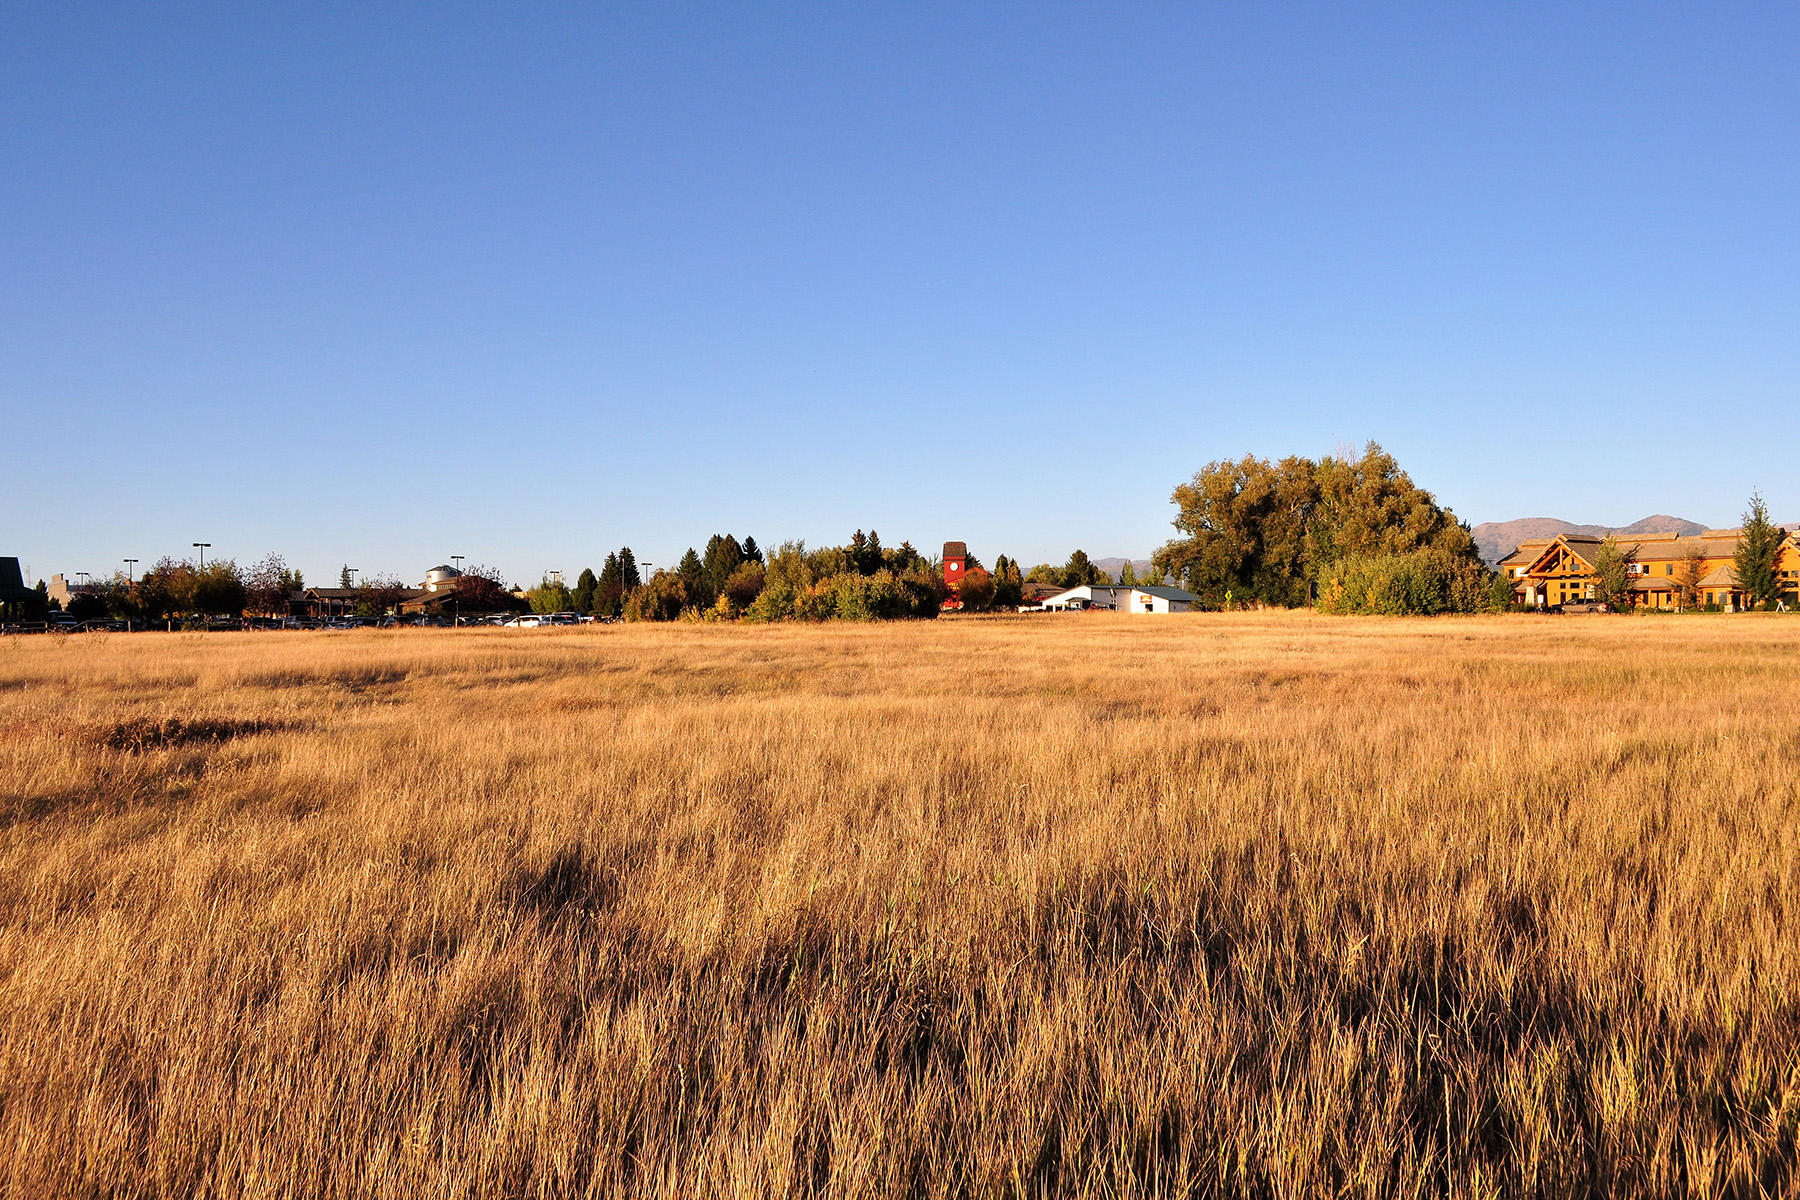 Land for Sale at Gateway to Driggs Mixed Used Development 300 N Main St Driggs, Idaho 83422 United States